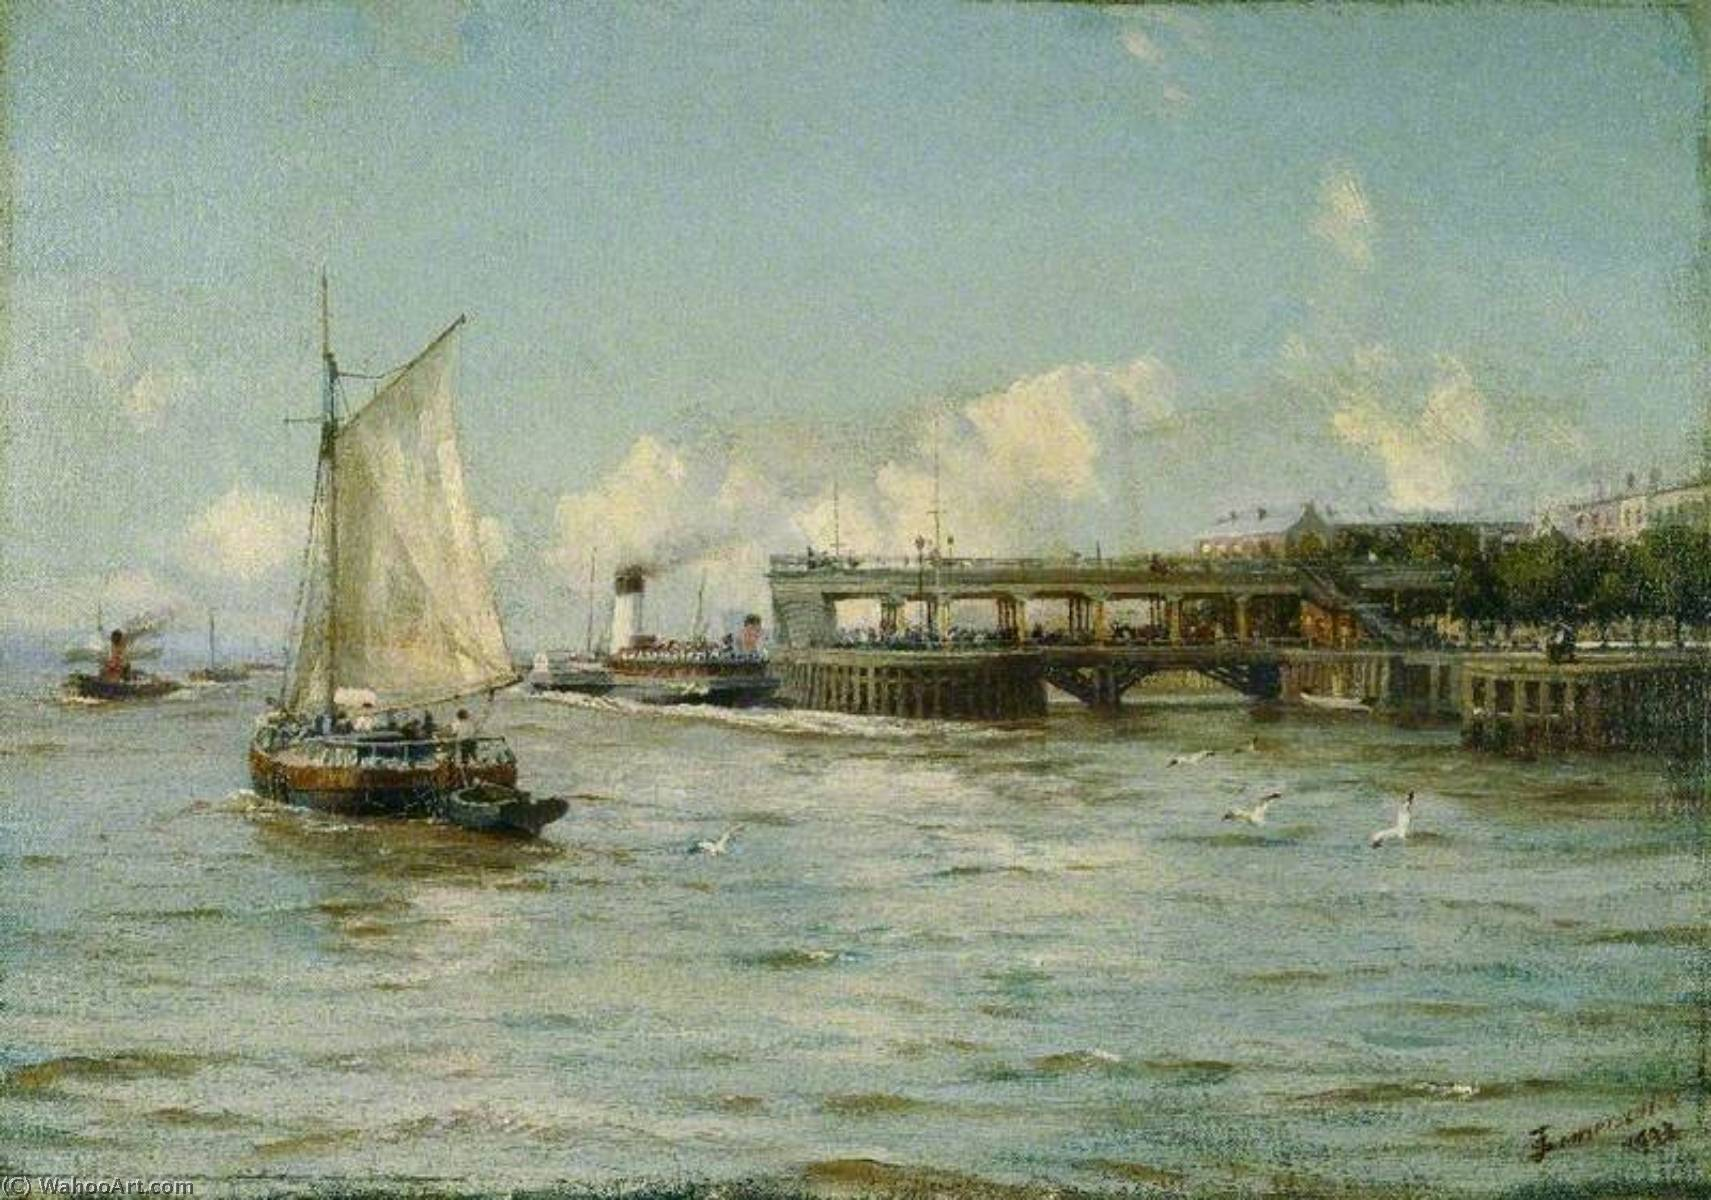 The Pier, Kingston upon Hull, 1922 by Thomas Jacques Somerscales (1842-1927) | Museum Art Reproductions Thomas Jacques Somerscales | WahooArt.com